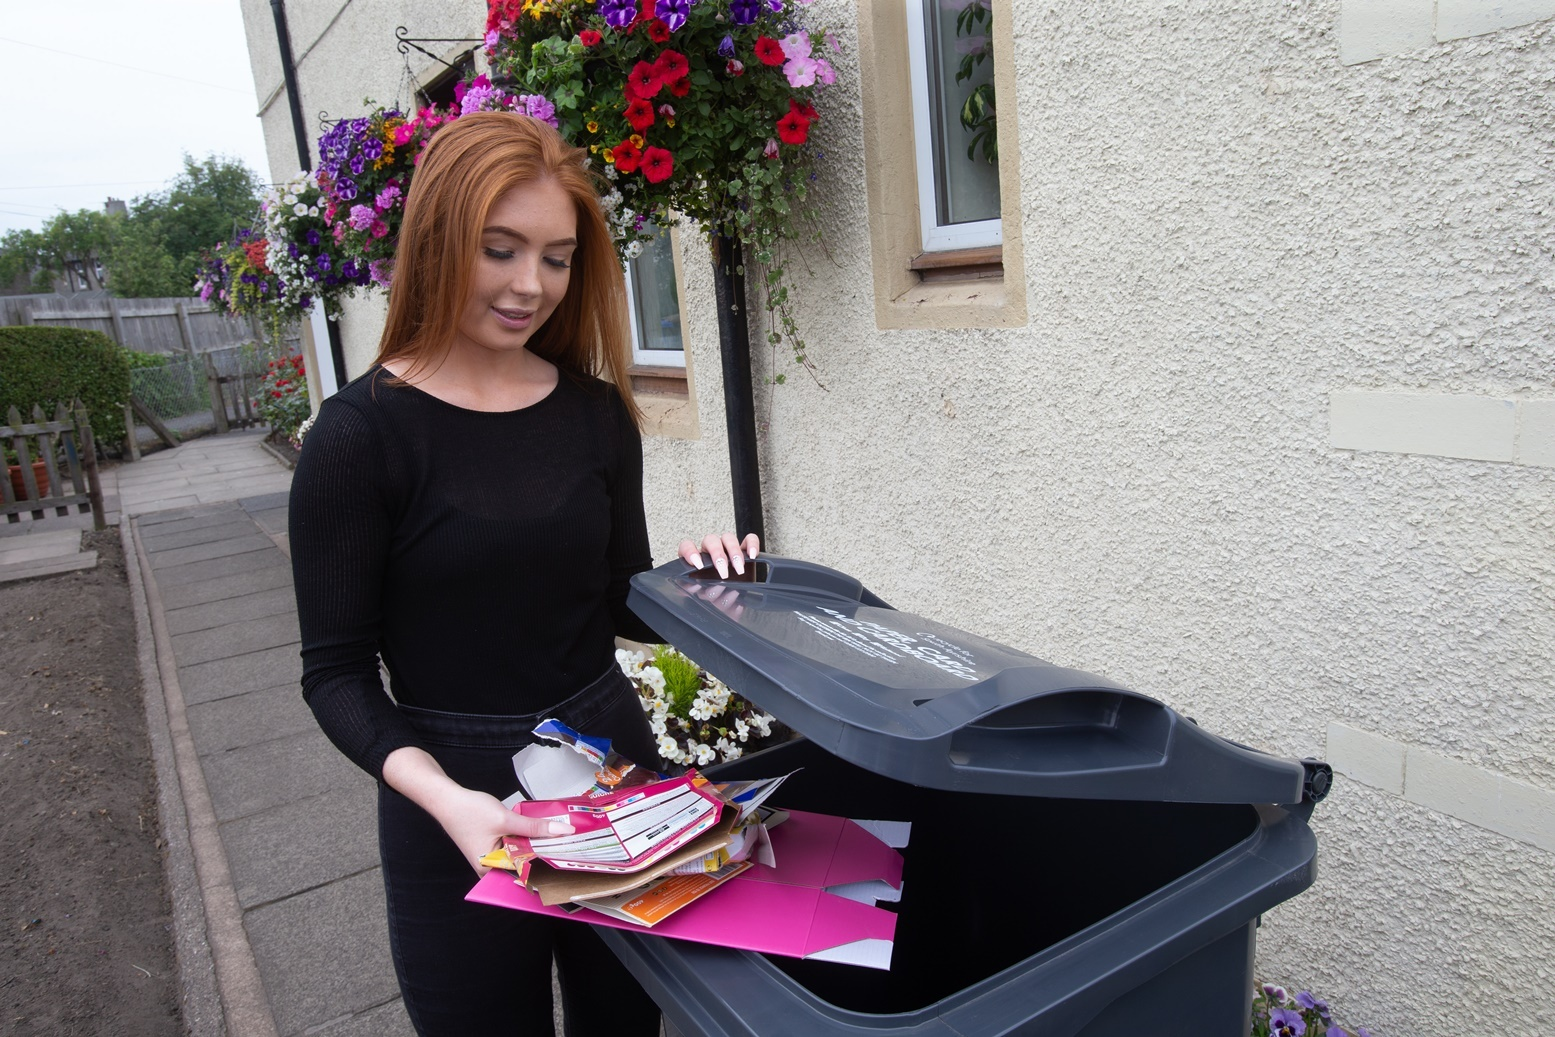 Recycling campaign starts biggest phase in South Ayrshire